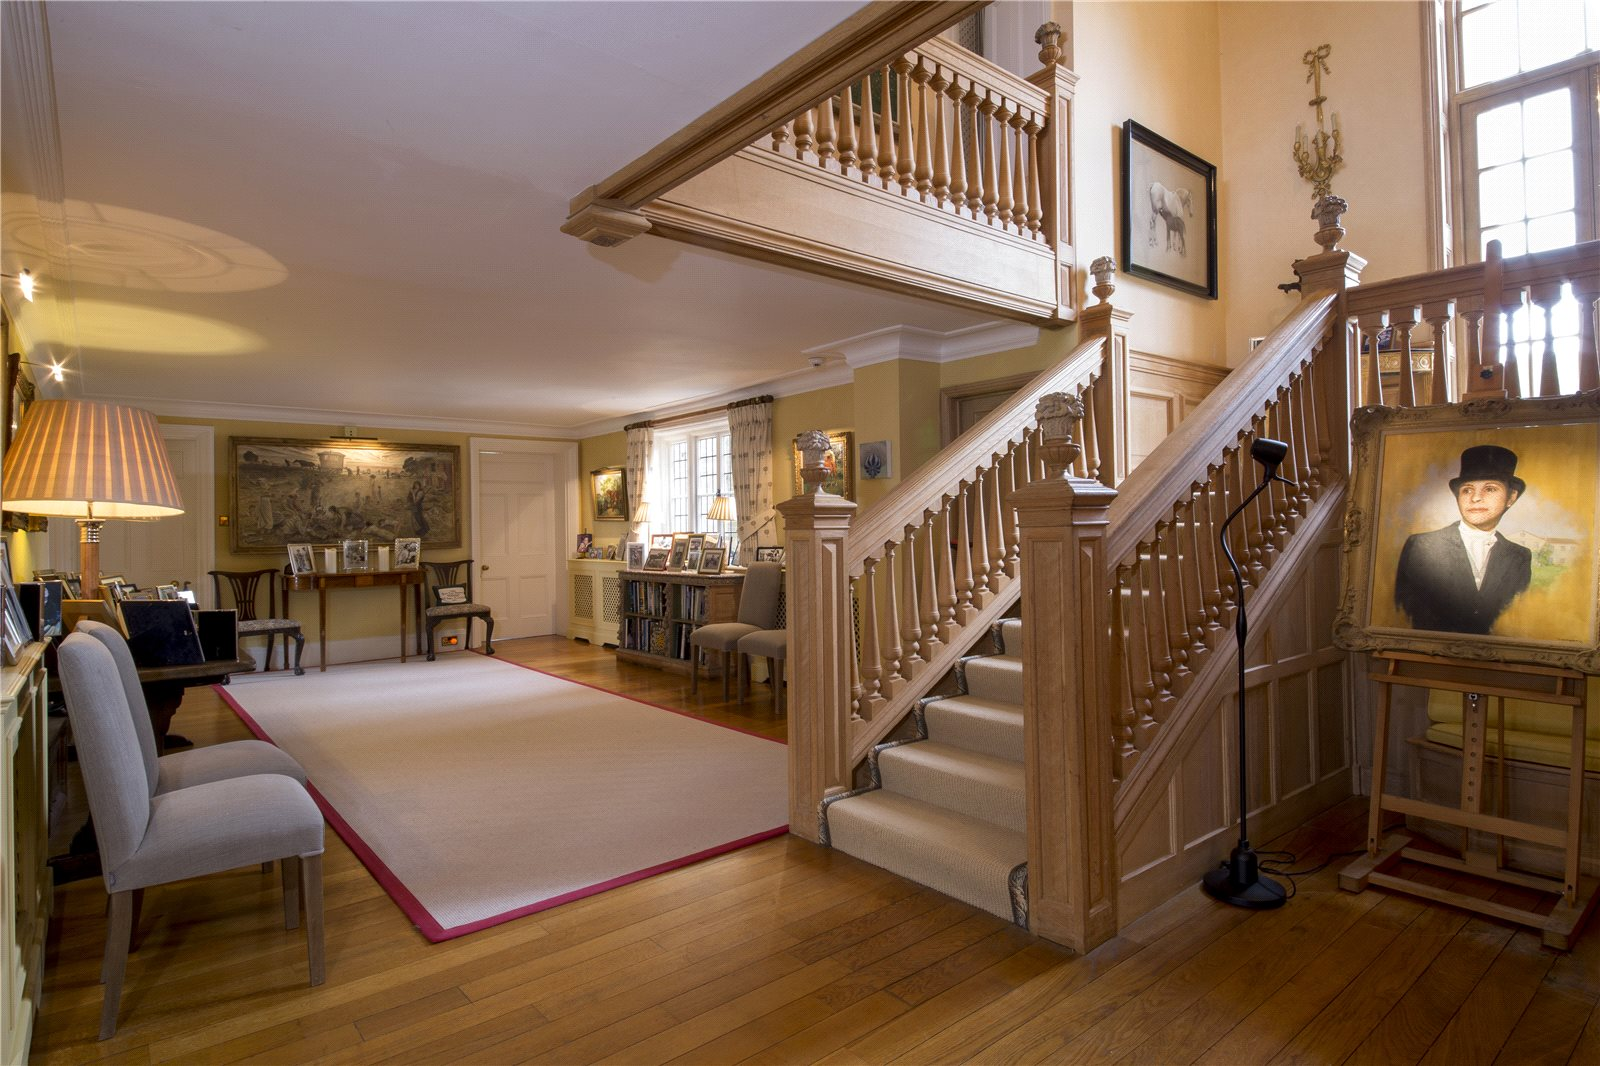 Additional photo for property listing at chute standen andover hampshire sp11 andover